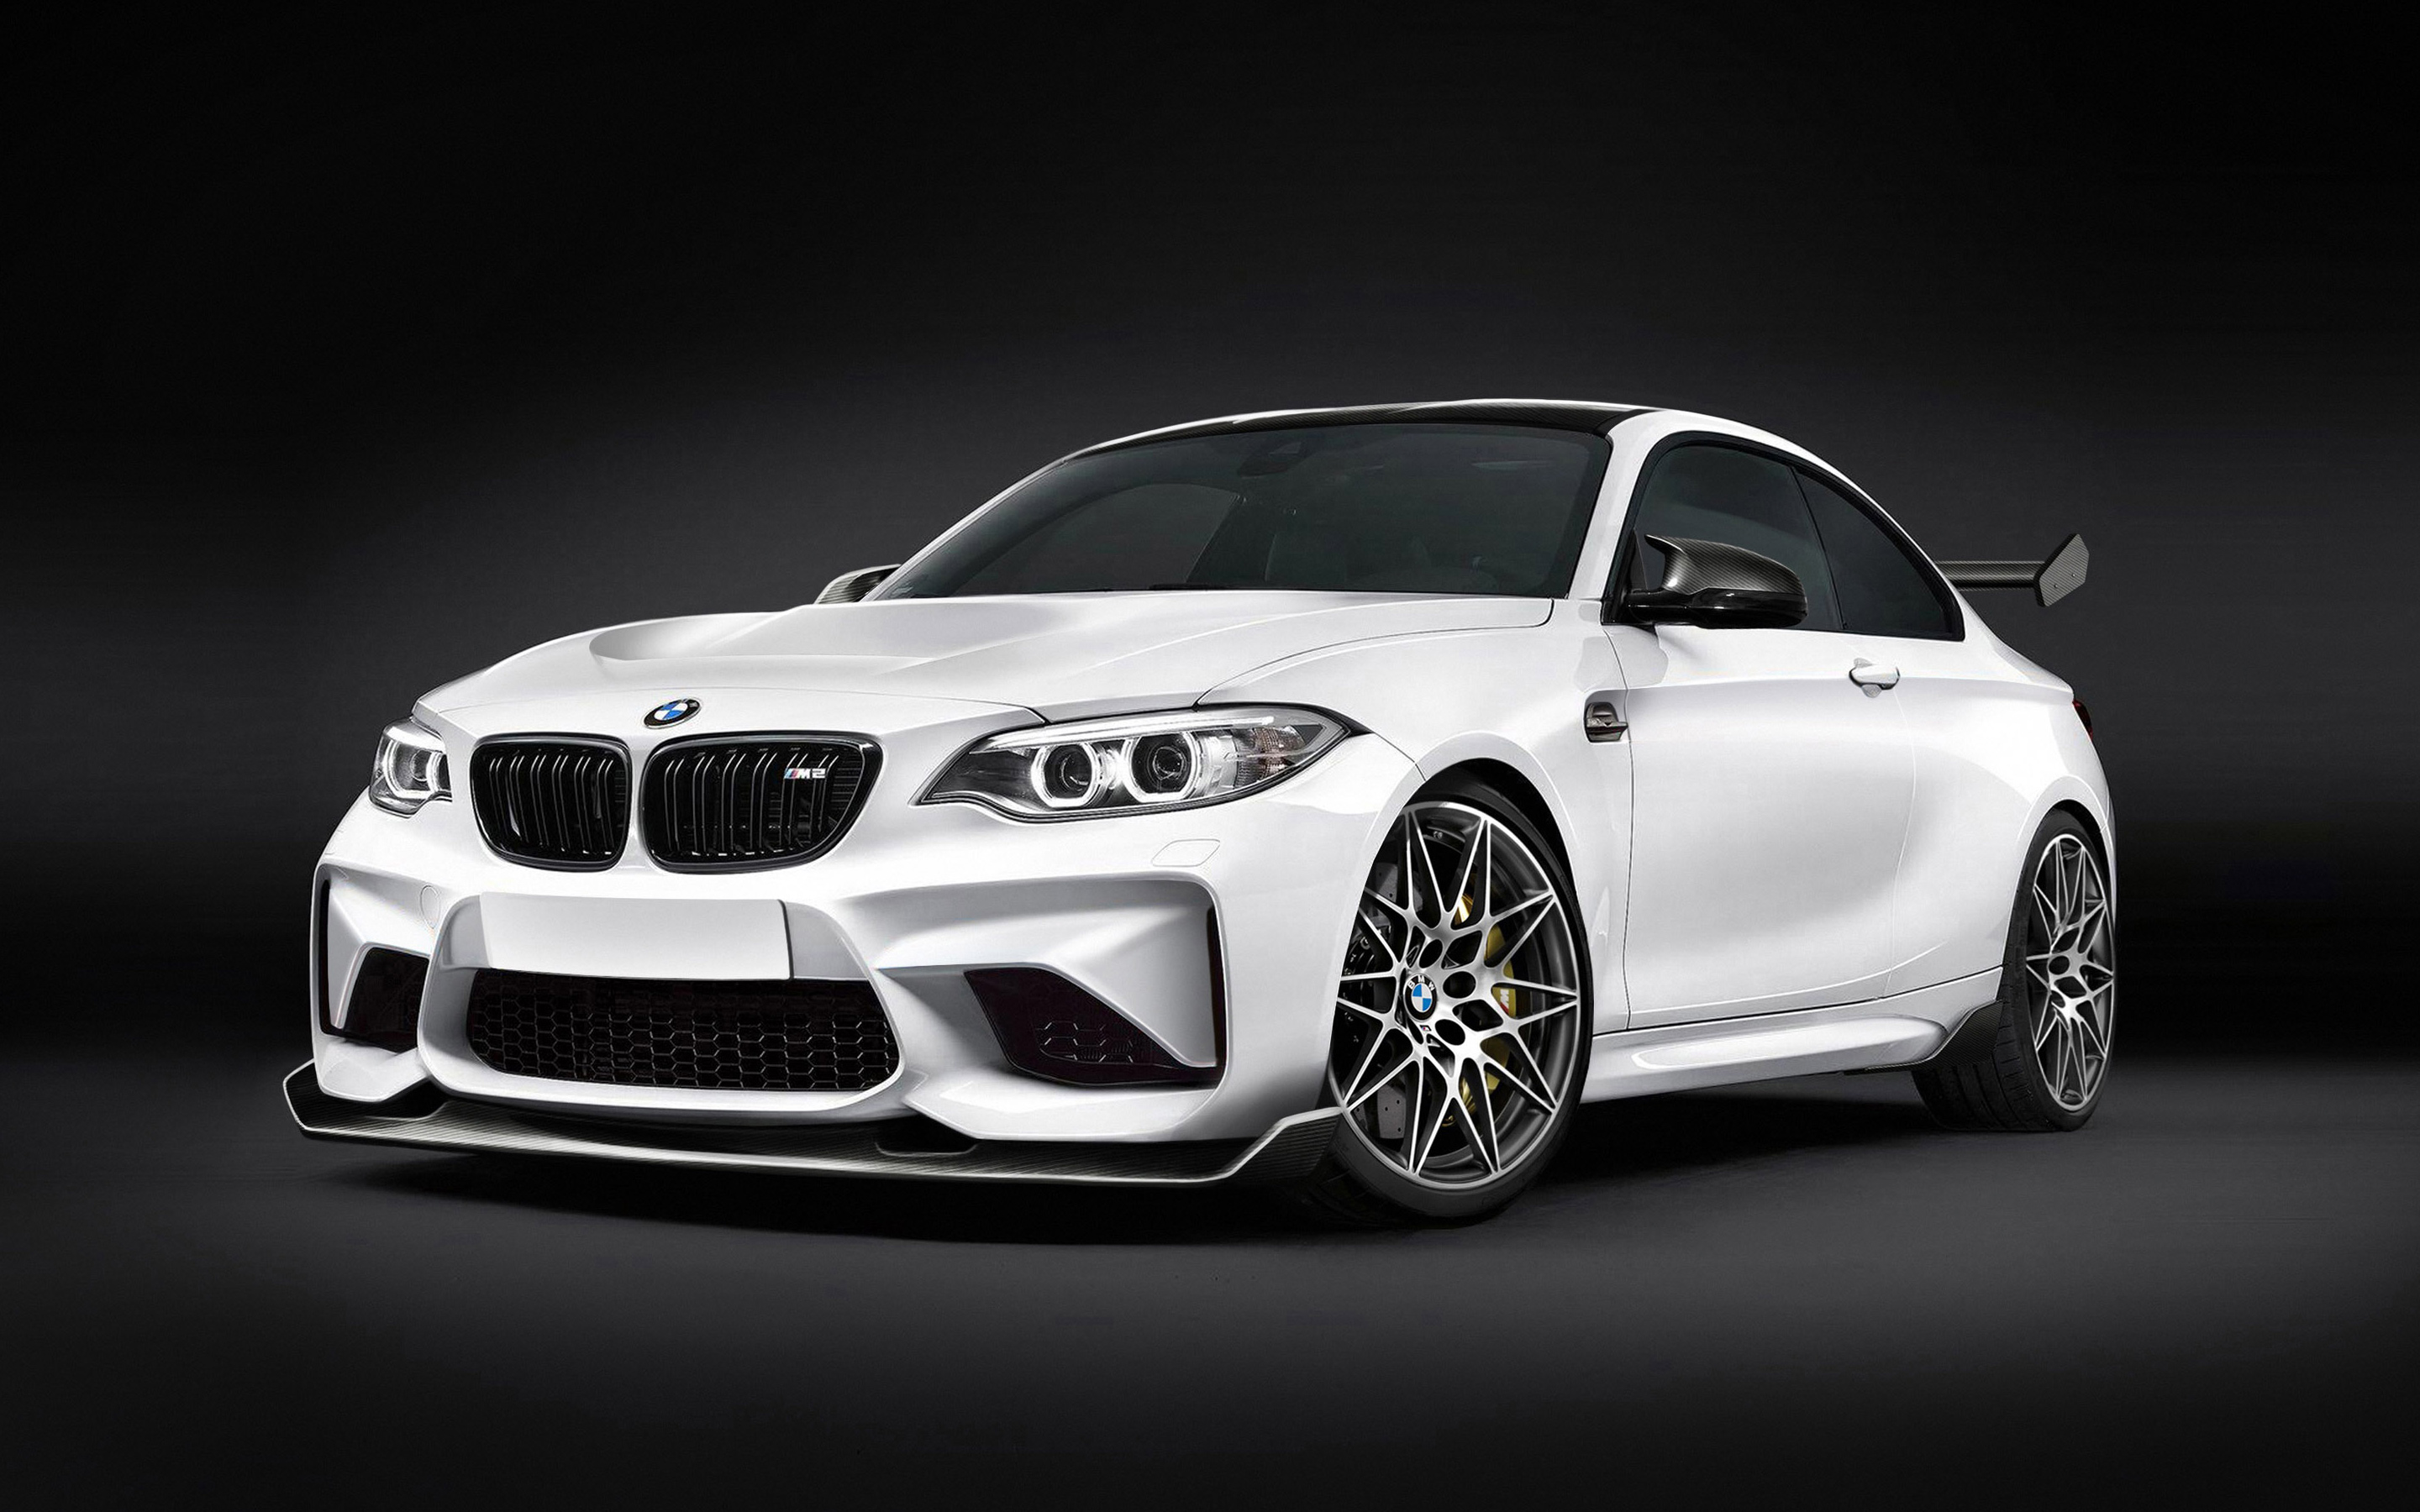 2880x1800 - BMW M2 Coupe Wallpapers 29